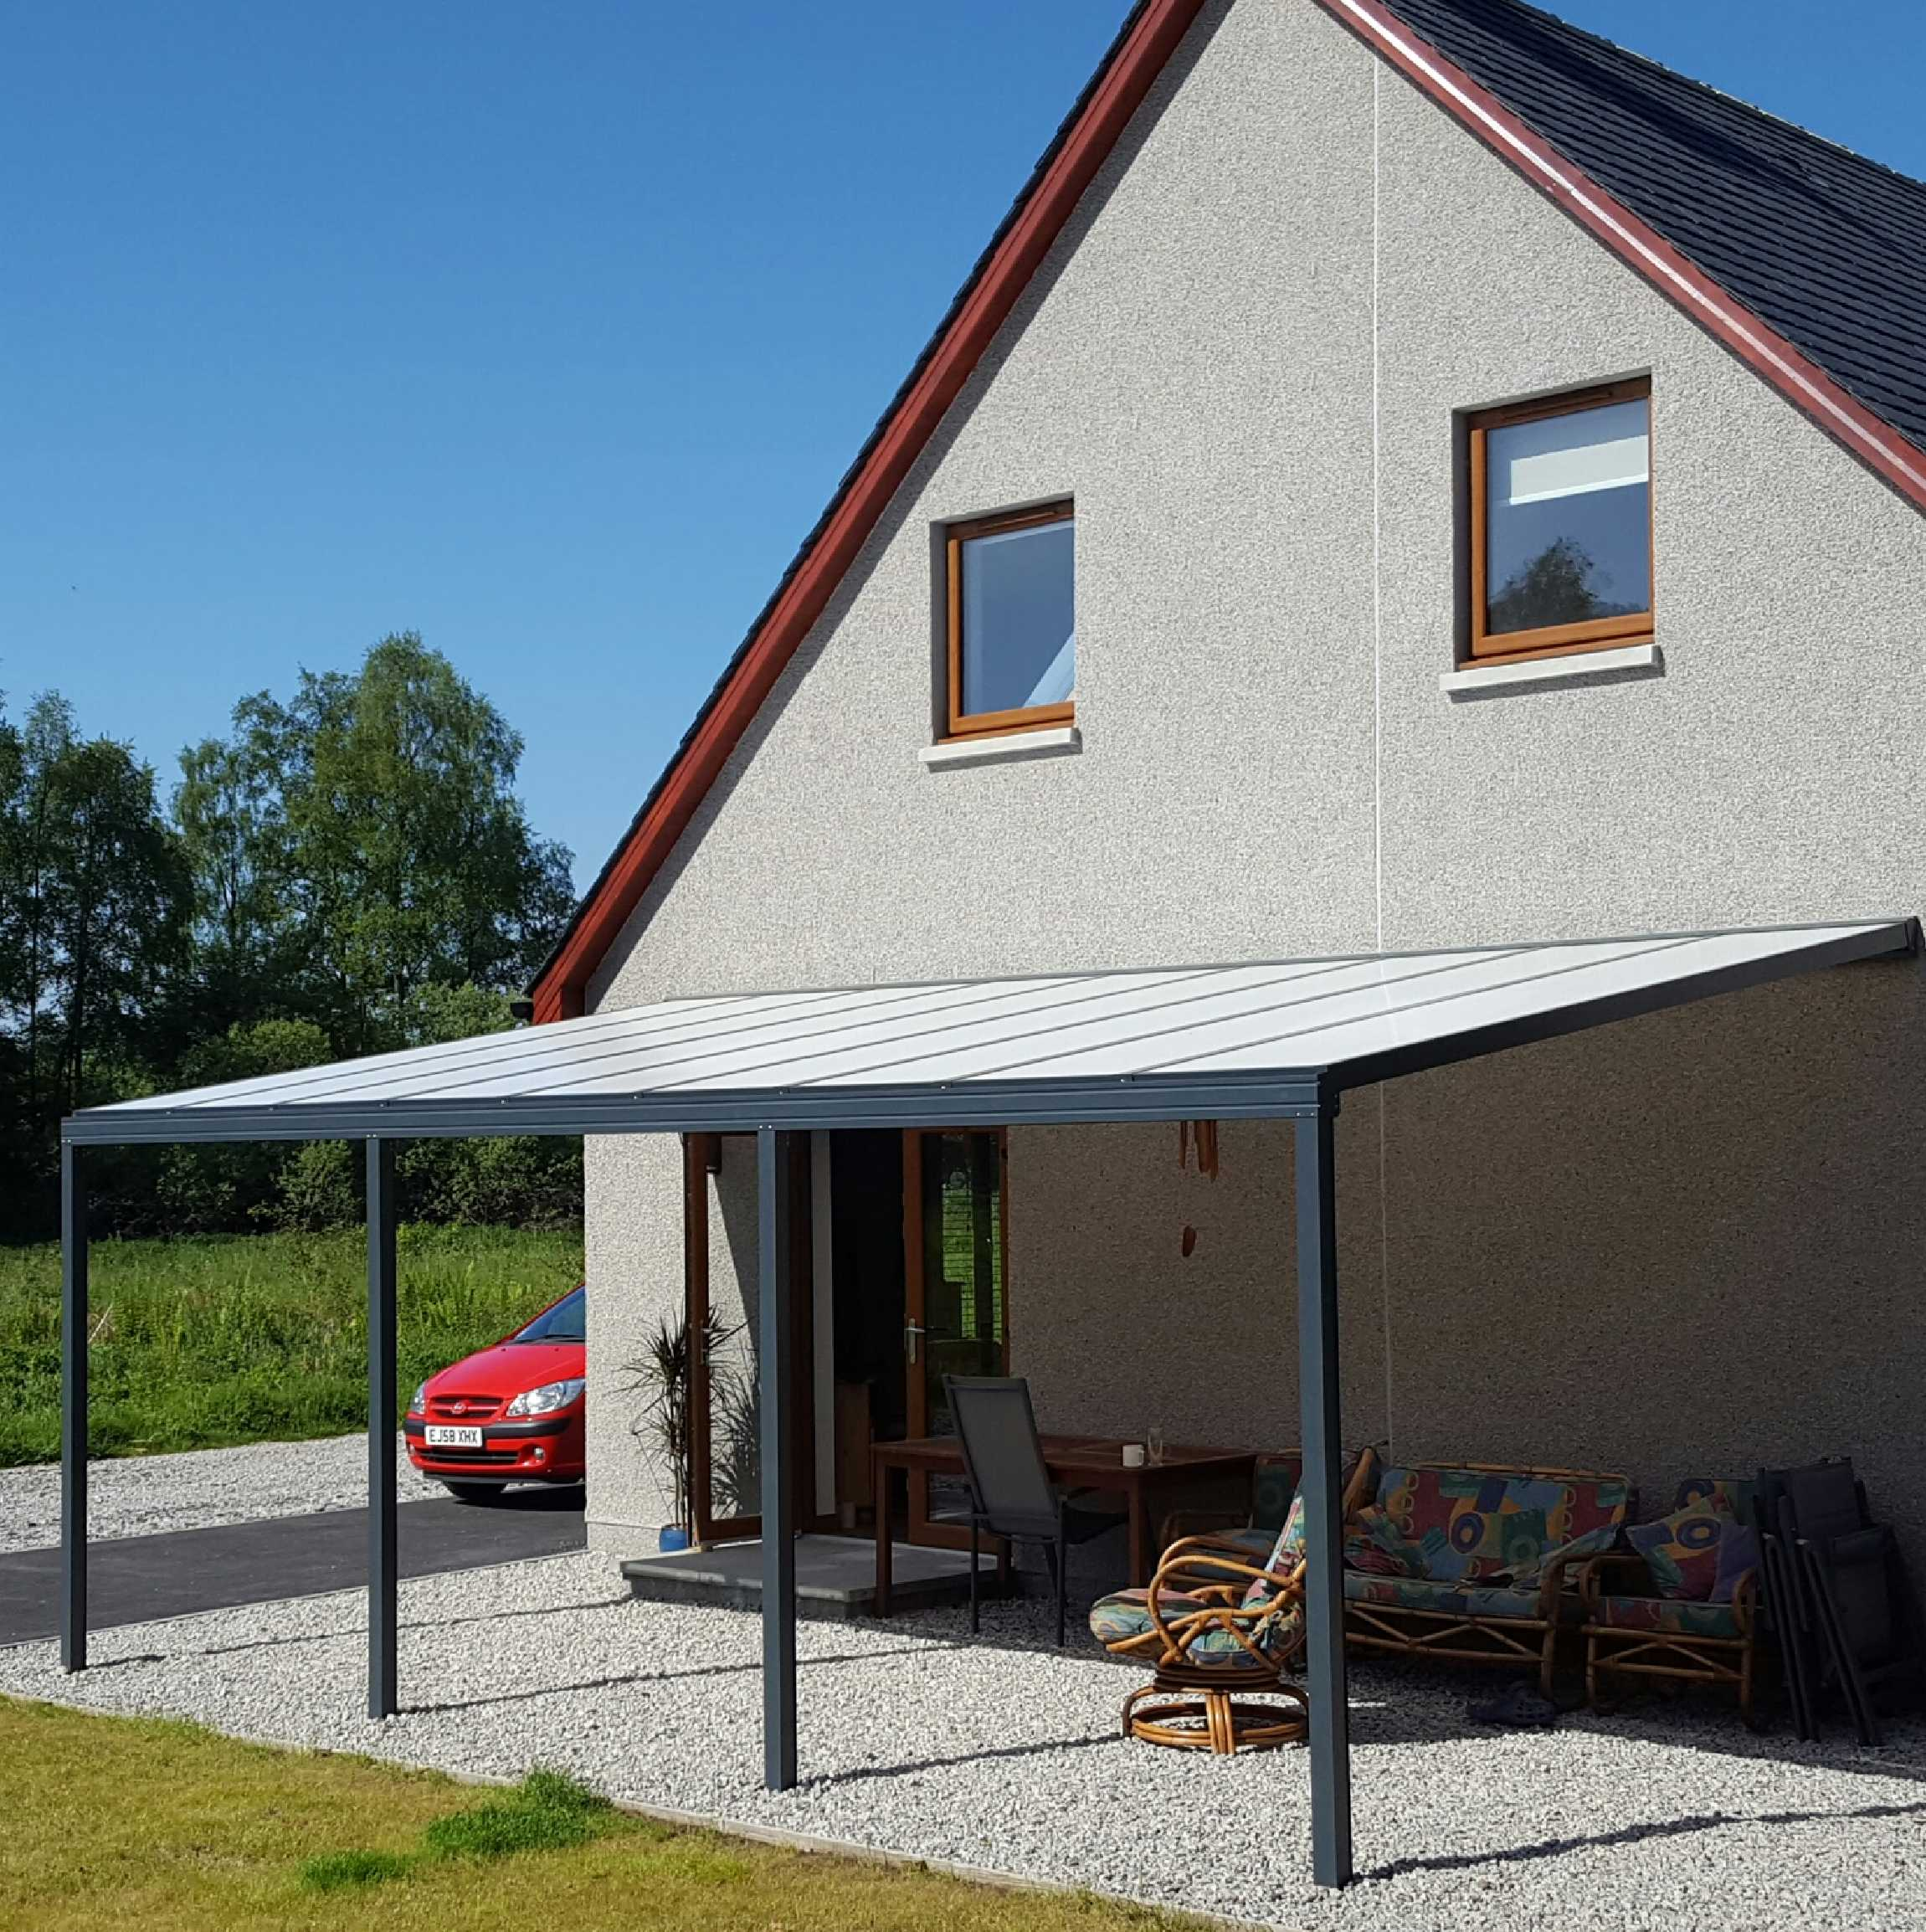 Great selection of Omega Smart Lean-To Canopy, Anthracite Grey, 16mm Polycarbonate Glazing - 12.0m (W) x 3.5m (P), (5) Supporting Posts